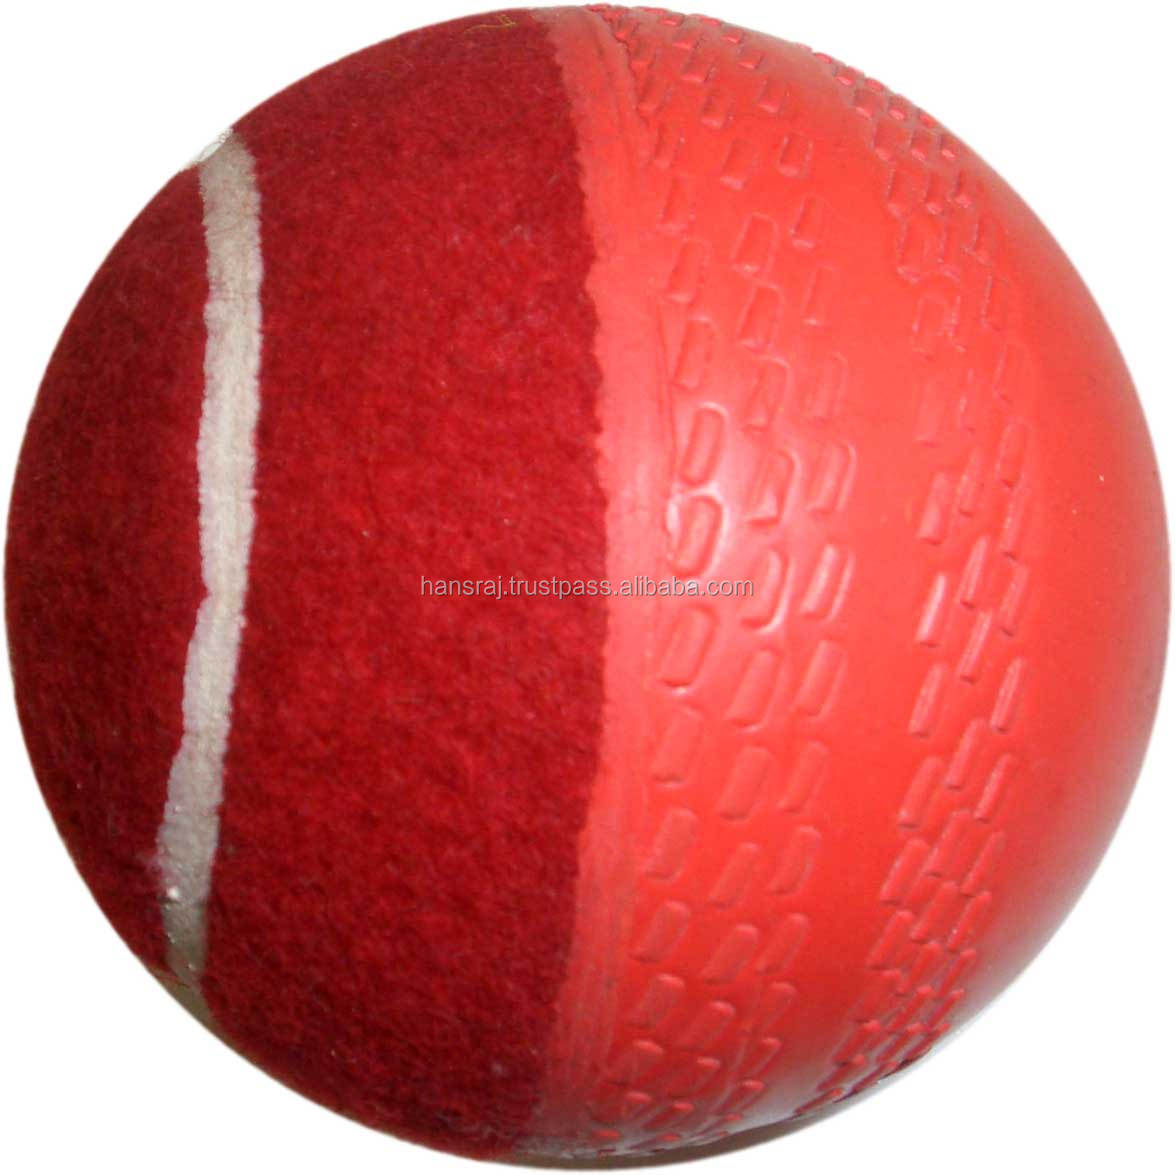 Swing and Spin Cantrol Cricket Ball